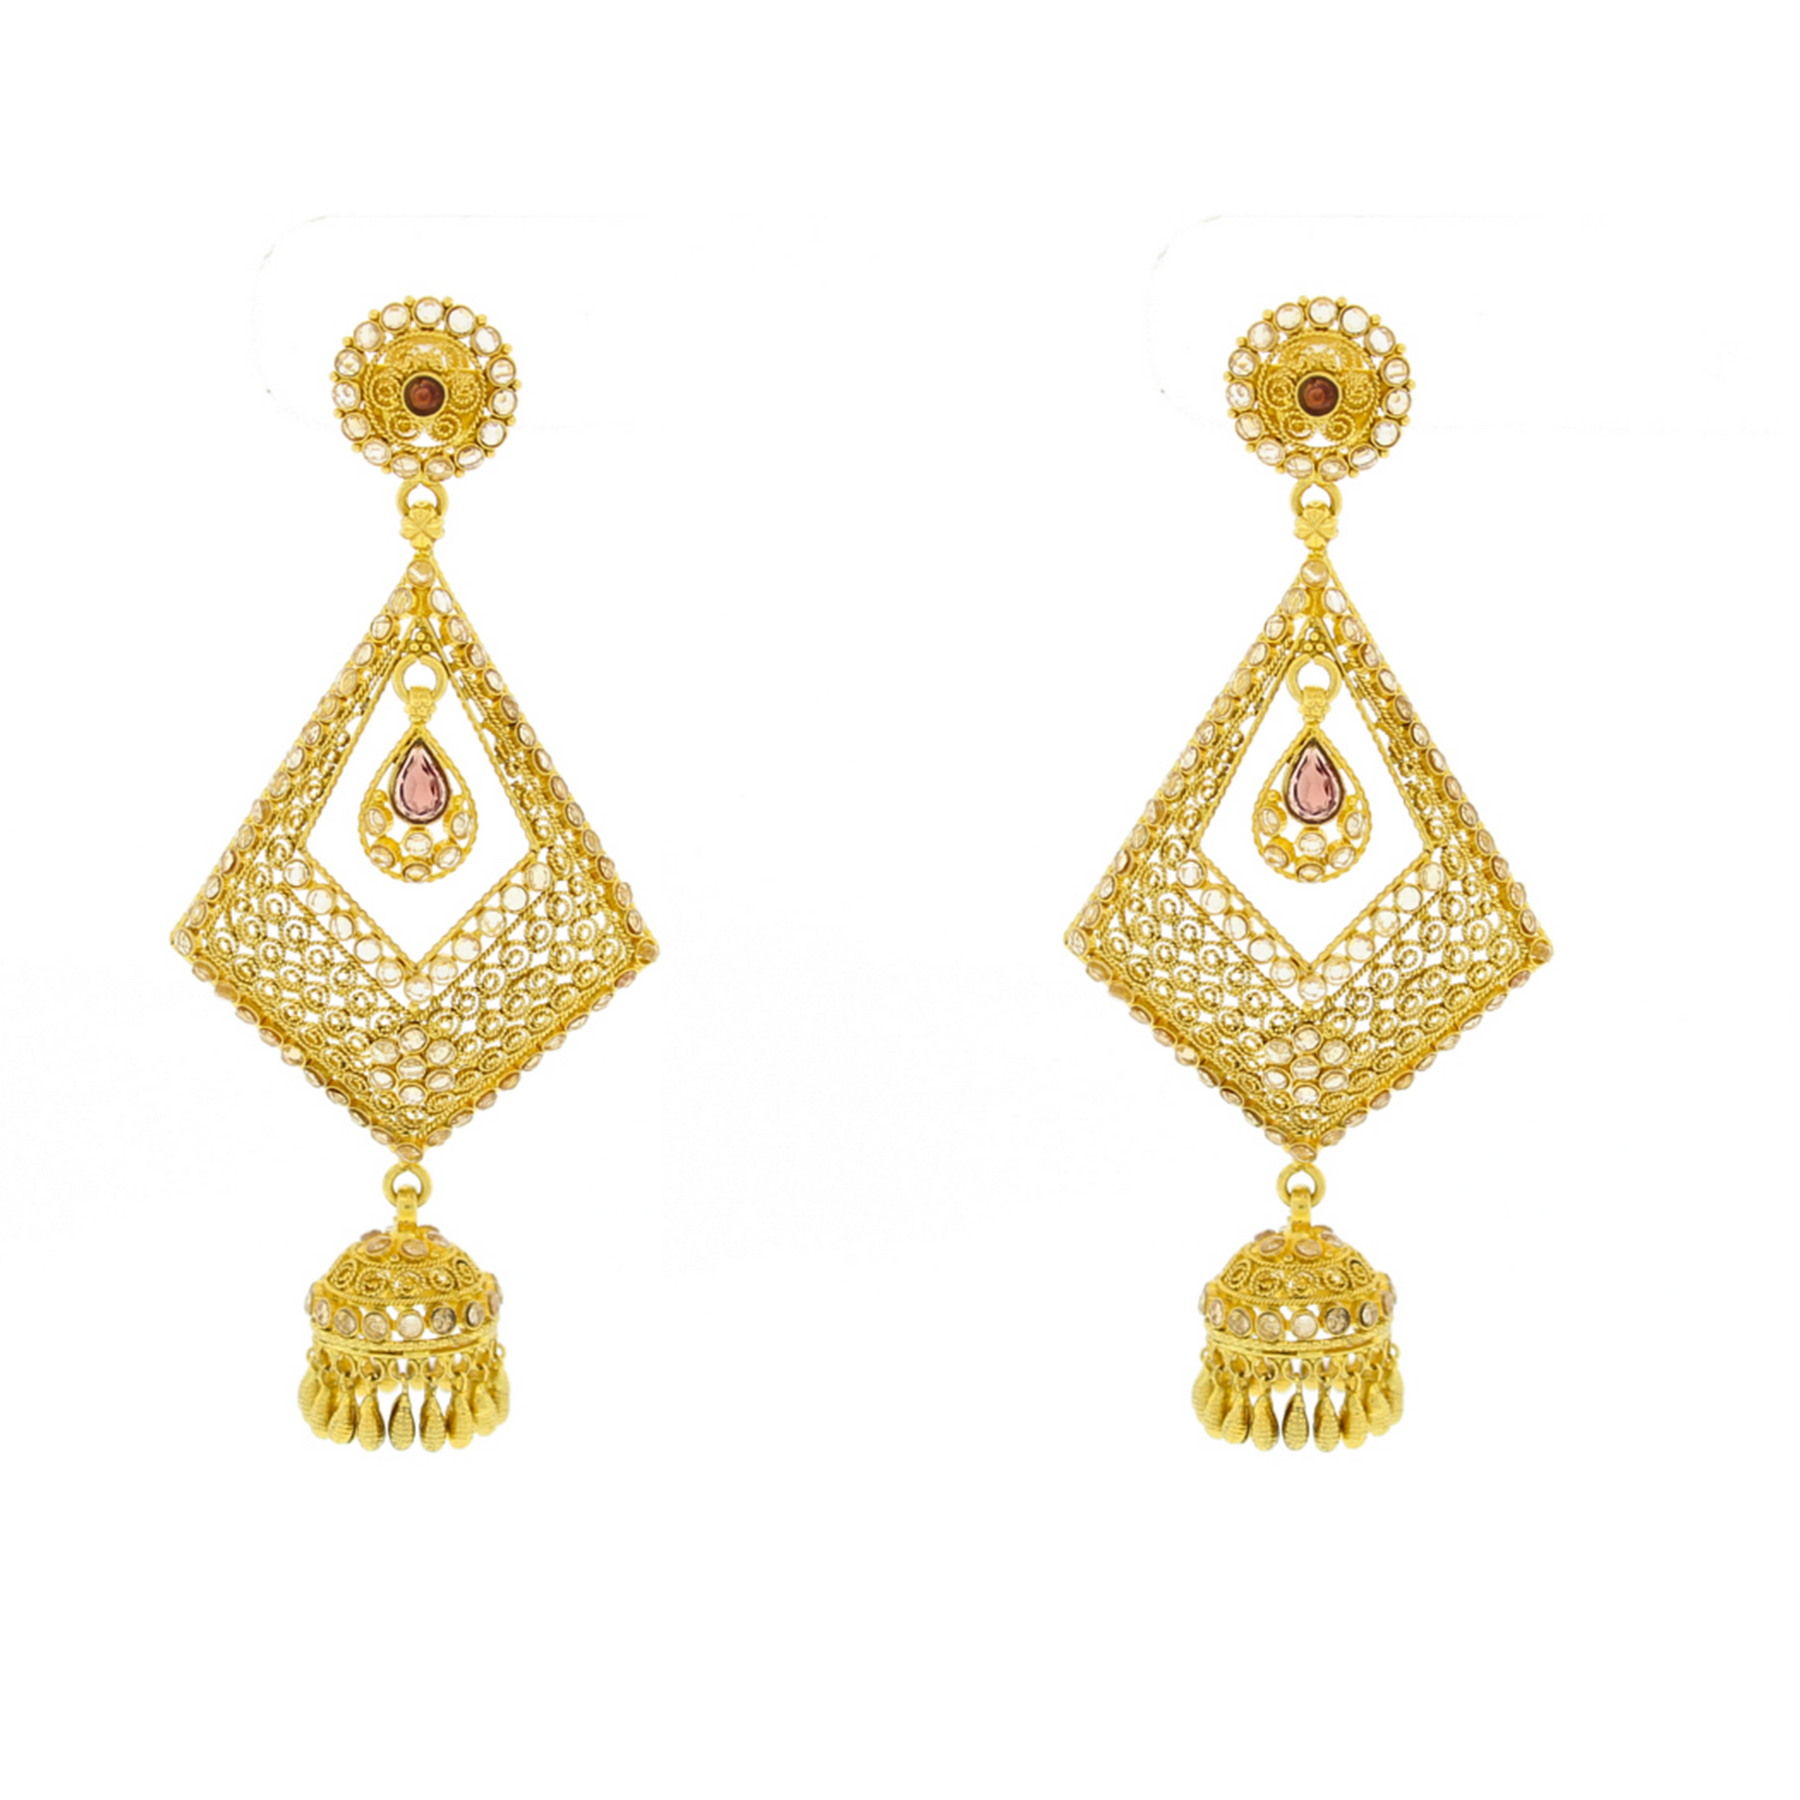 bald earrings hairstyles jewellers antique bold manubhai from pin